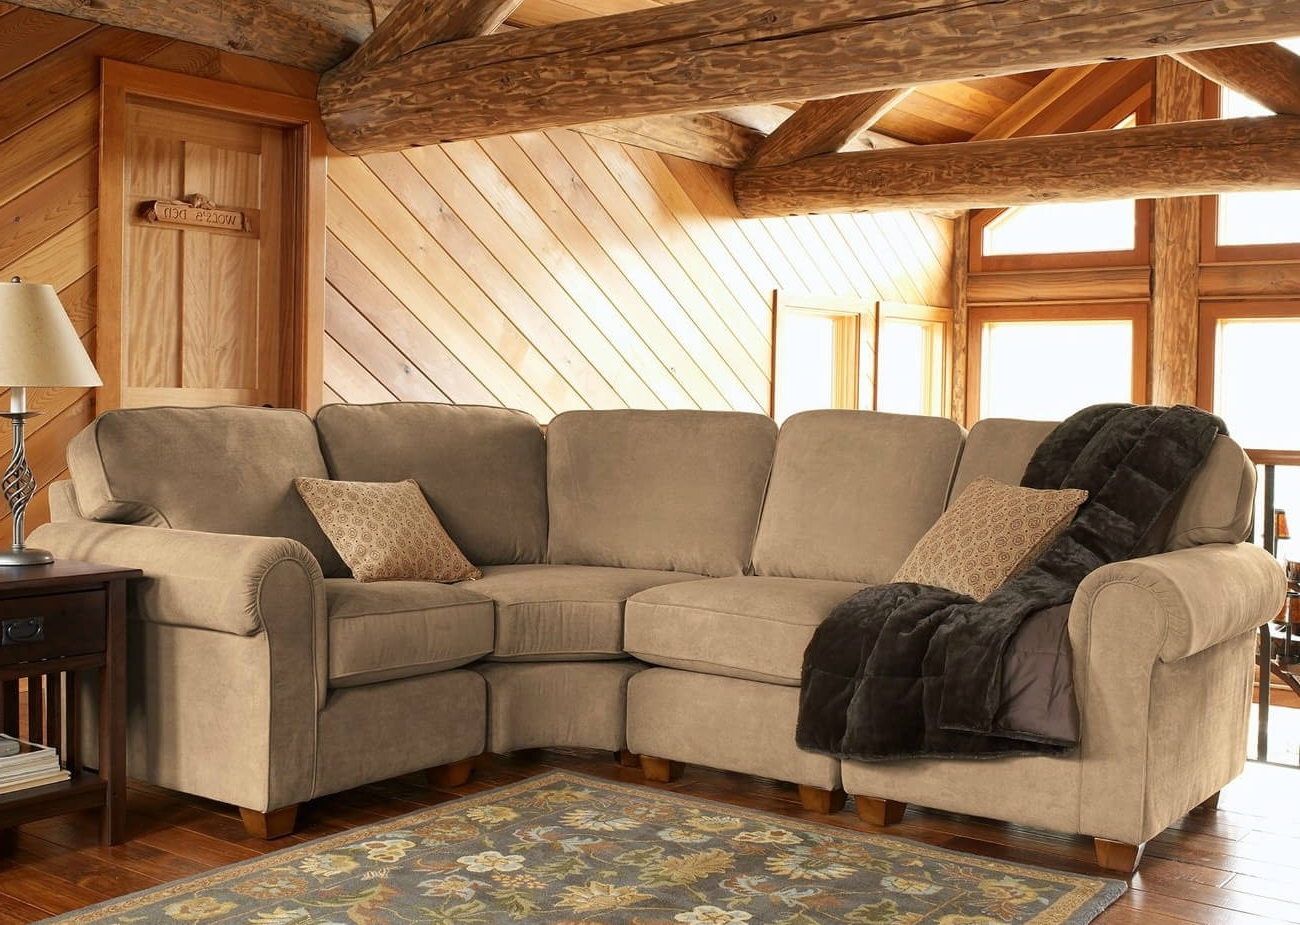 Favorite Sectional Sofas That Can Be Rearranged For 100 Awesome Sectional Sofas Under $1,000 (2018) (View 10 of 20)